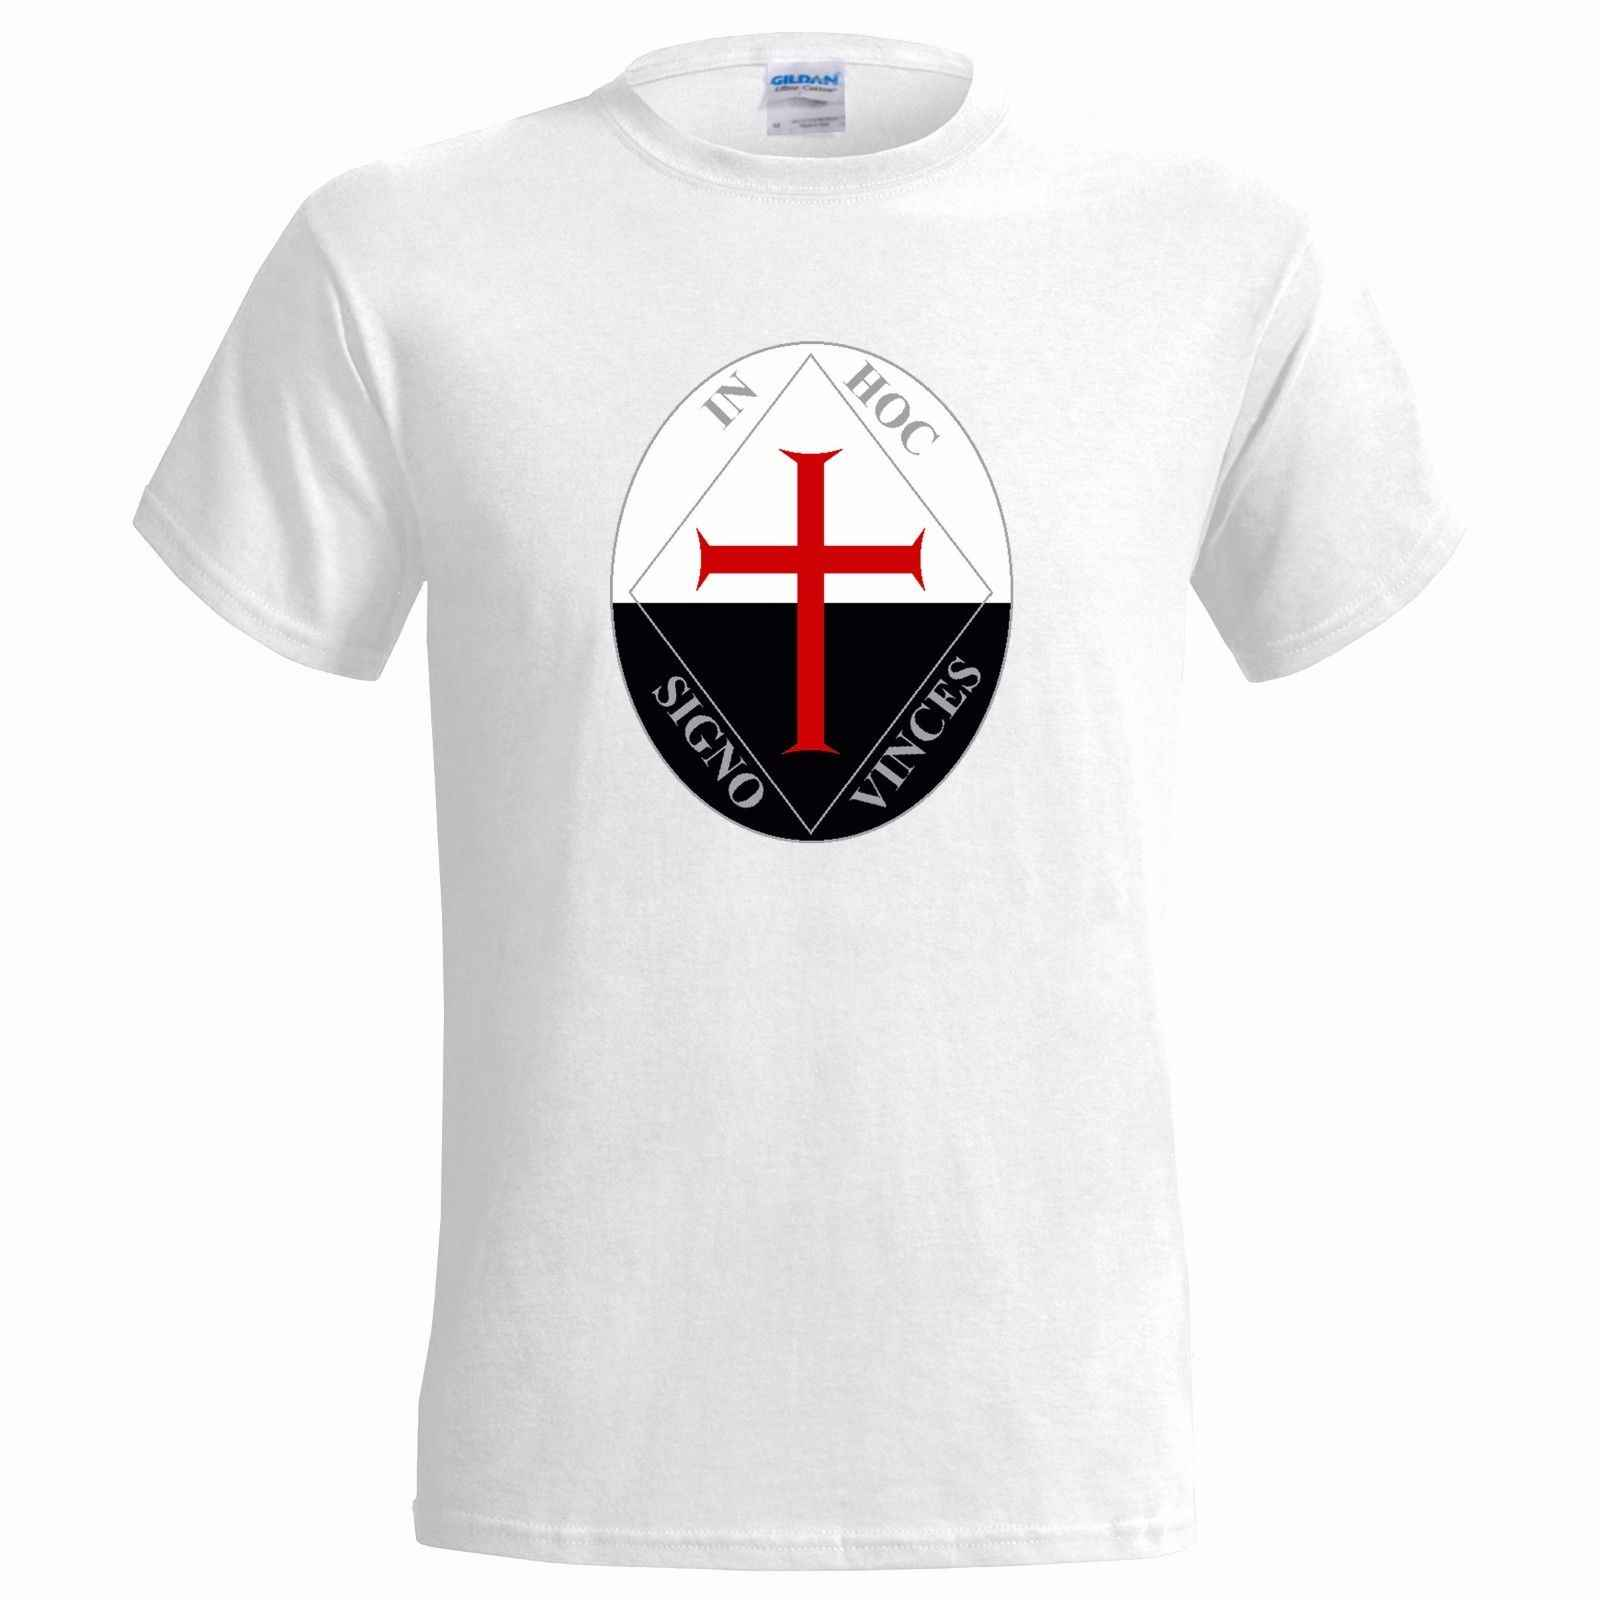 CARNIVALE SYMBOL MENS T SHIRT KNIGHTS TEMPLAR ILLUMINATI FREE MASON FREEMASON  Cool Casual pride t shirt men Unisex New Fashion